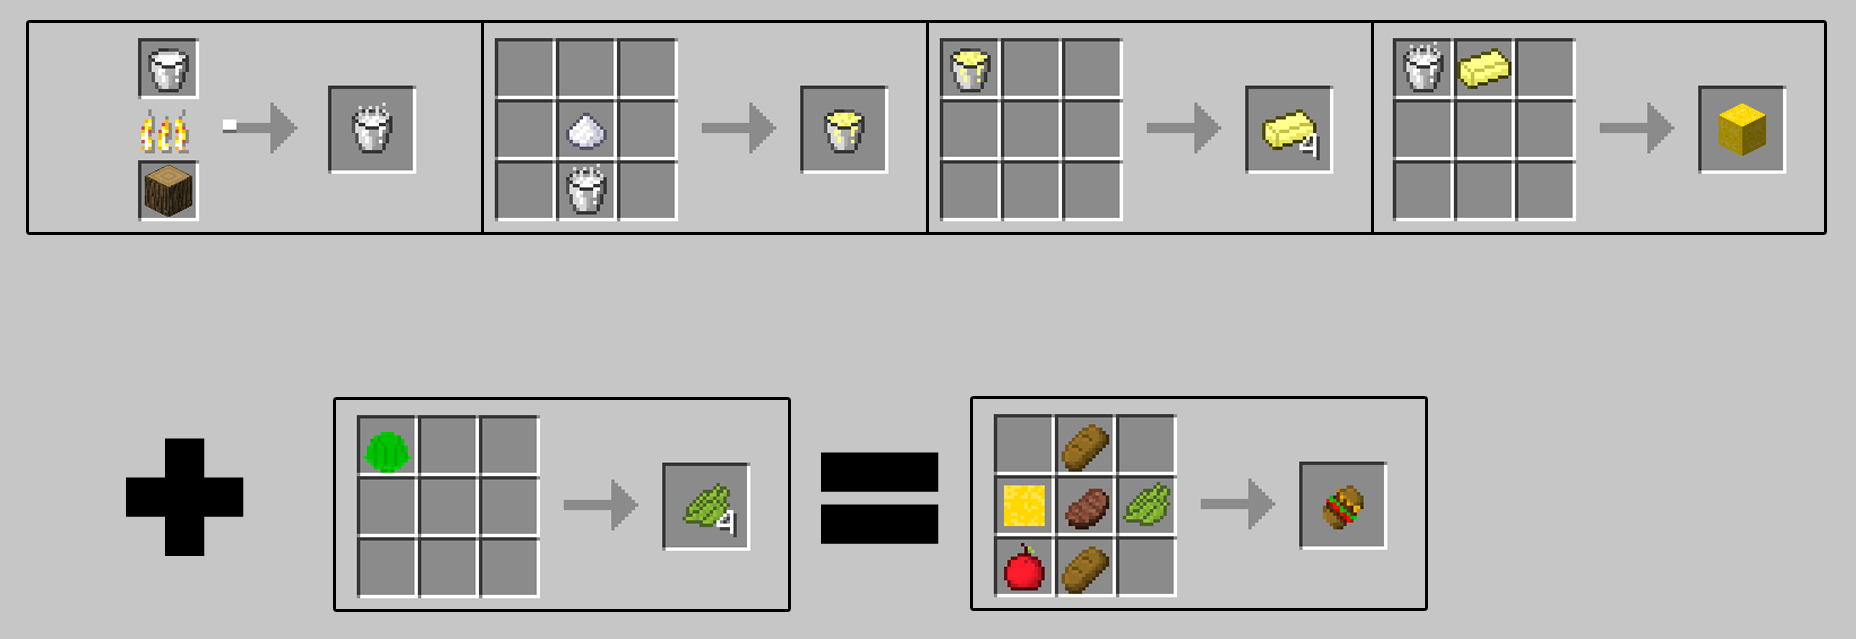 How to make food in minecraft the image for Cuisine minecraft